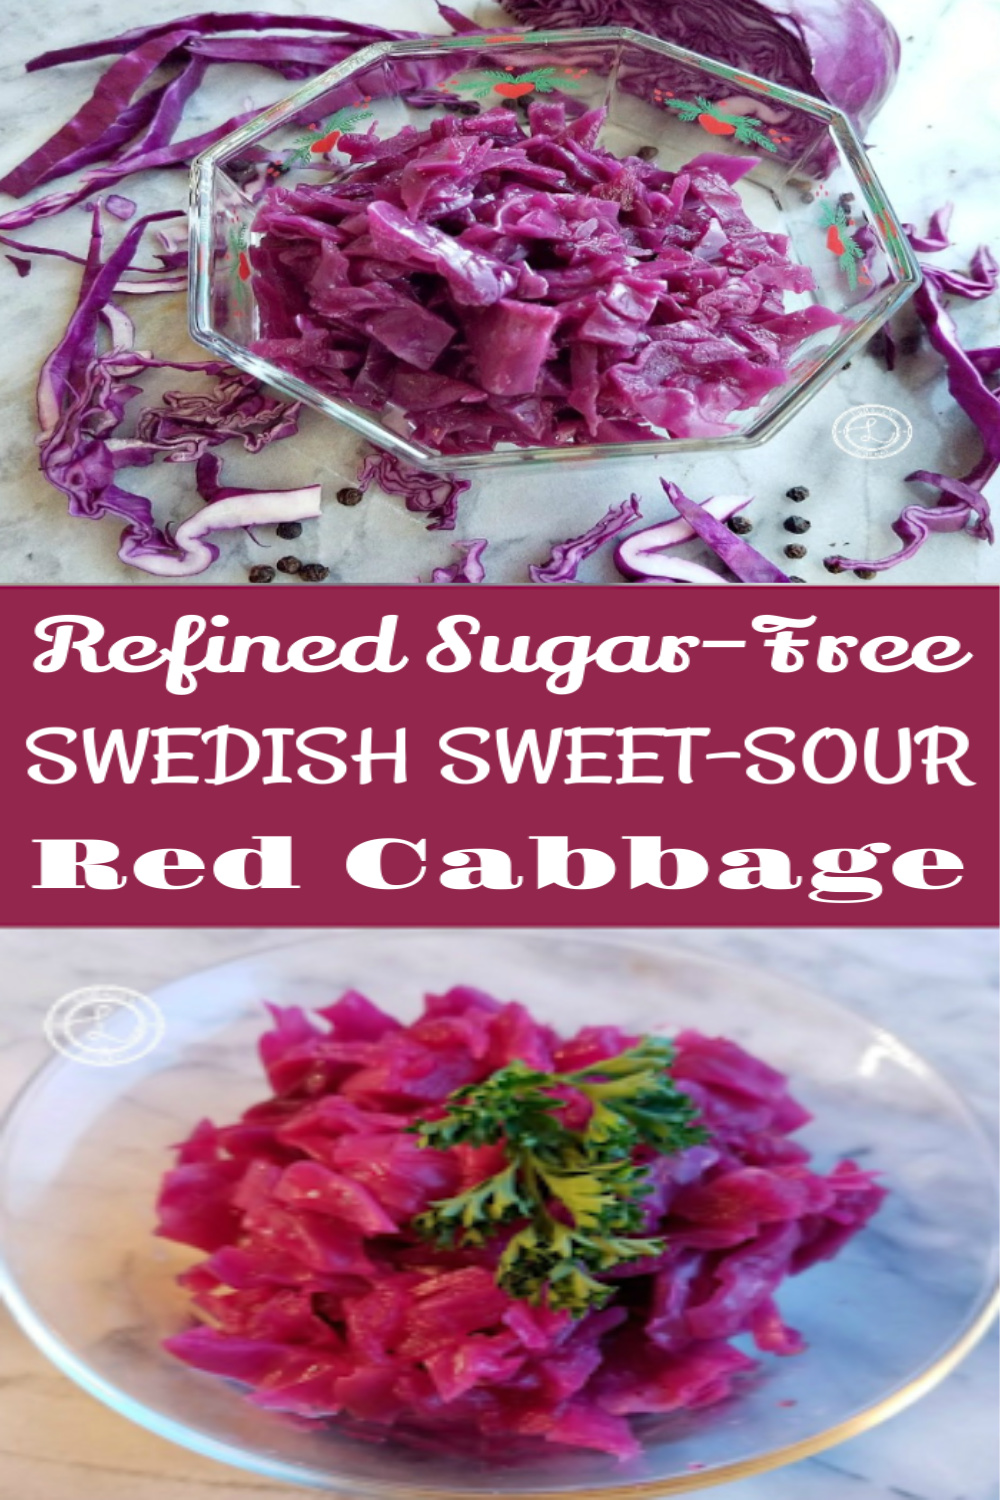 Swedish Sweet and Sour Red Cabbage in two pictures in two different bowls.